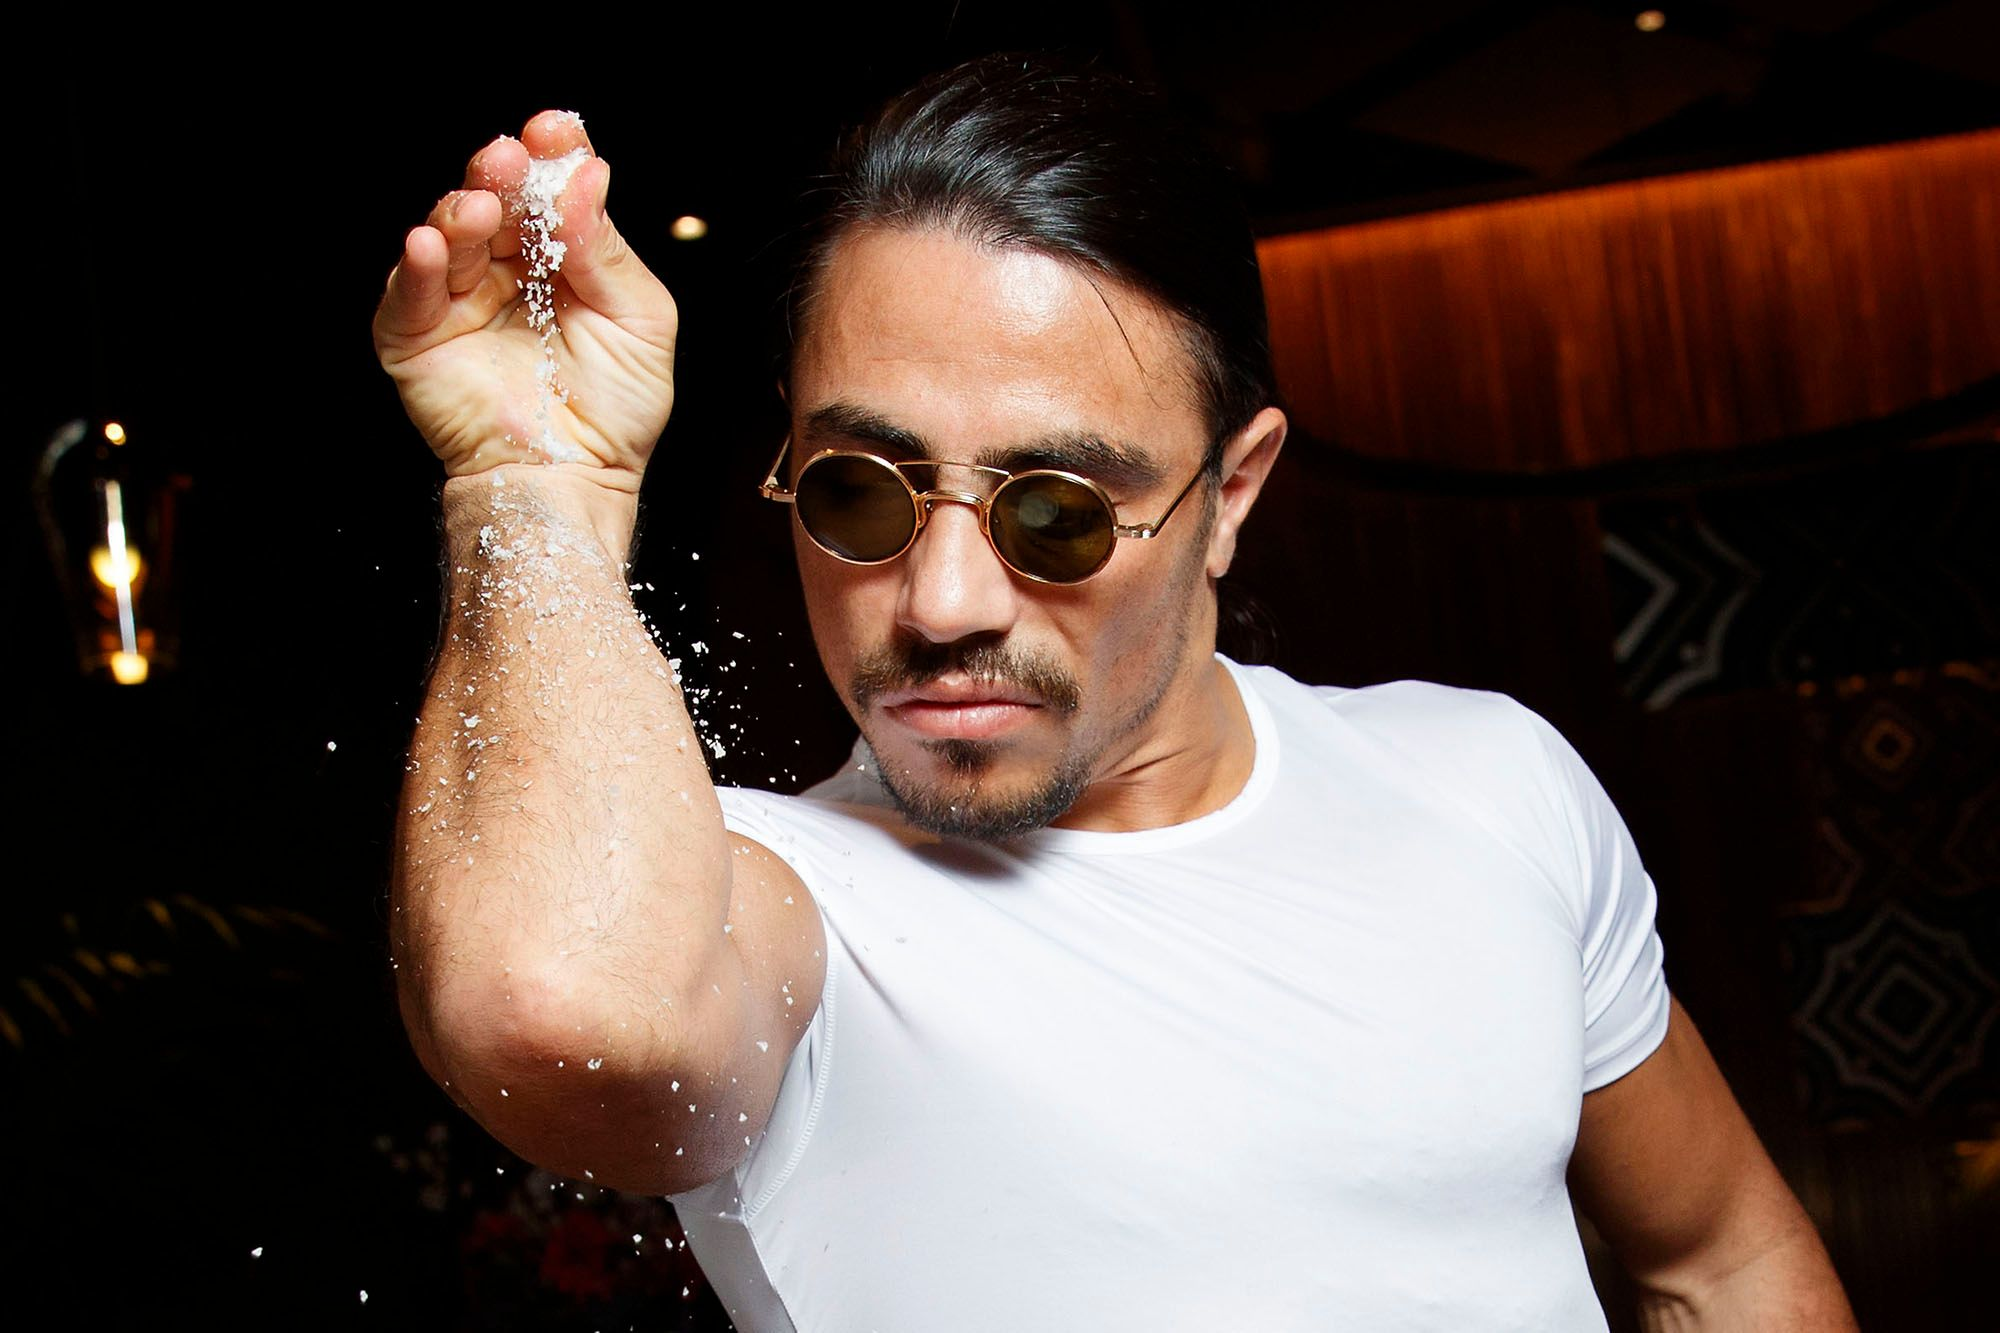 Nurs-Et Dinner (Salt Bae)